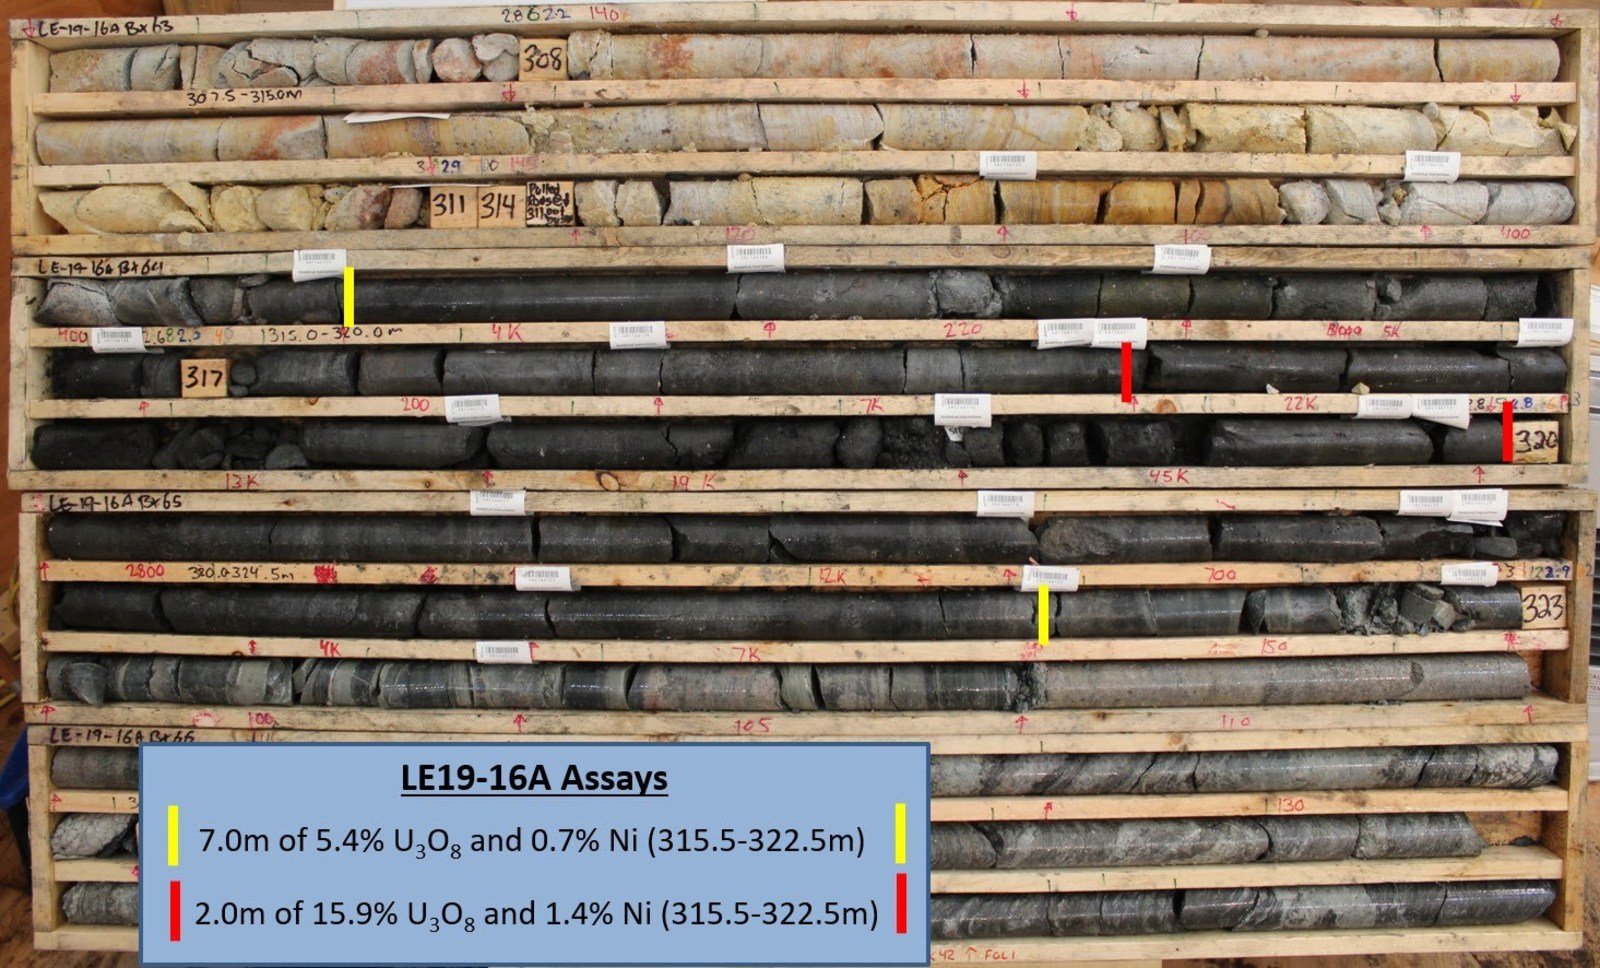 Figure 4 –LE19-16A Core Photo Annotated with Assay Results